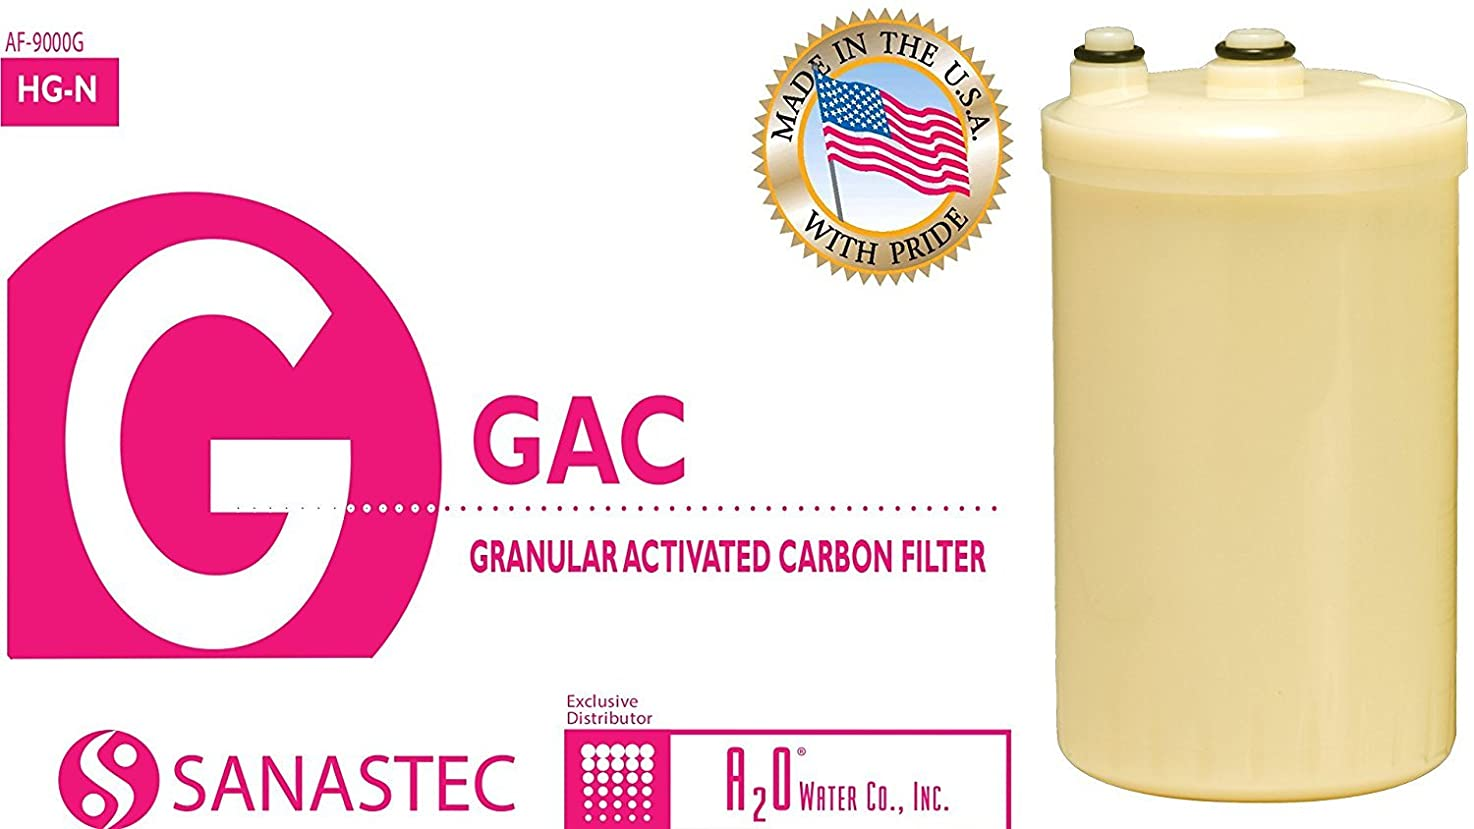 NEW! HG-N type replacement filter for Kangen Enagic water ionizer, Made in USA with NSF certified materials, compatible with HG_N. Chlorine Test Kit Included